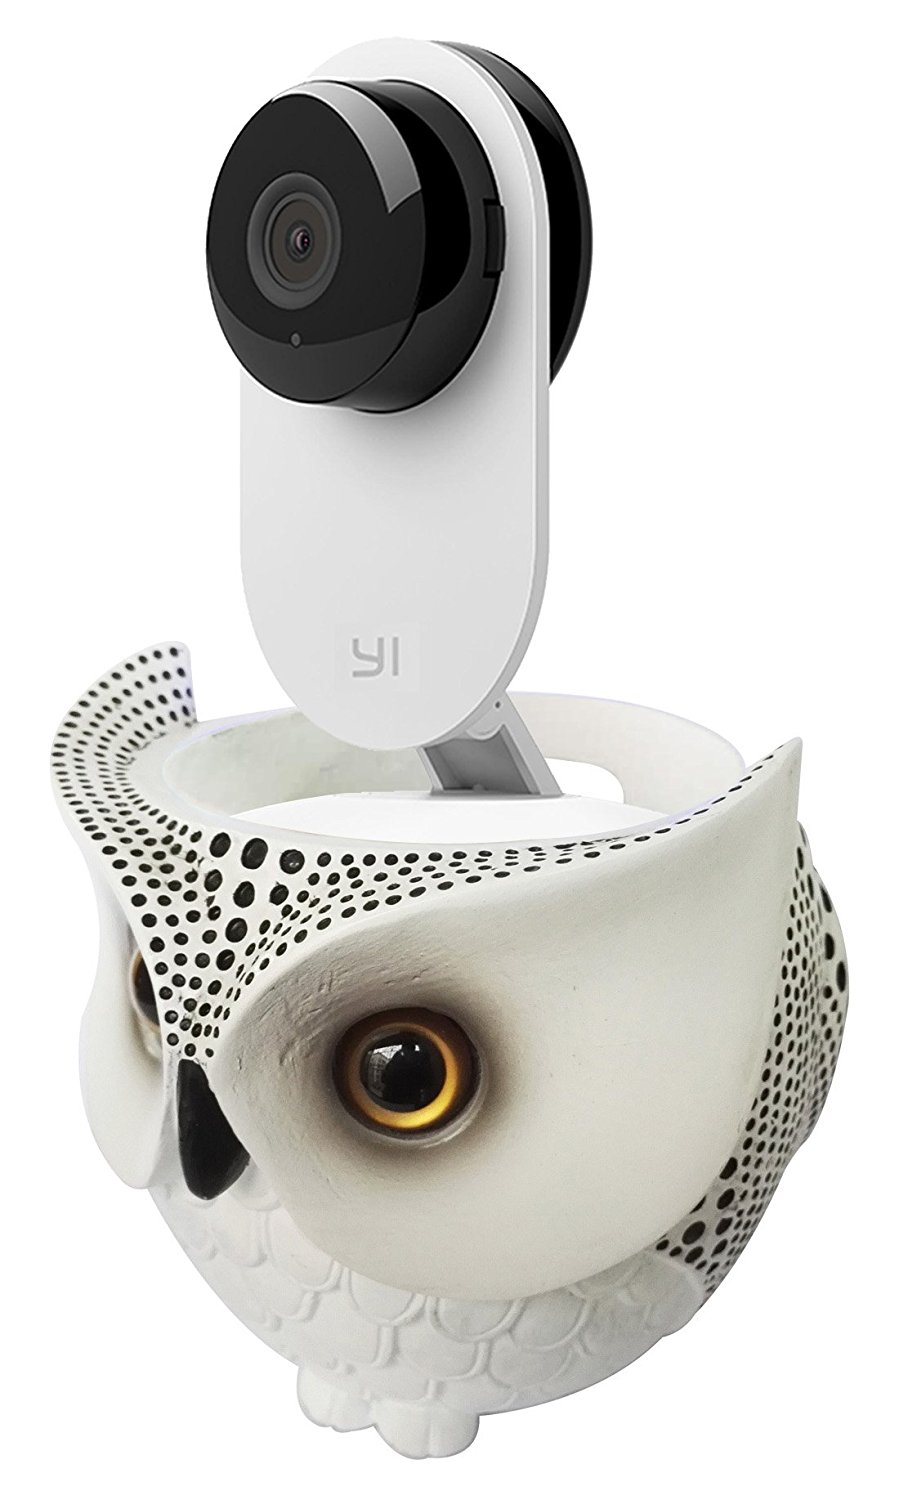 FitSand Owl Statue Crafted Stand Guard Holder Station for YI Home Camera Wireless IP Security Surveillance System